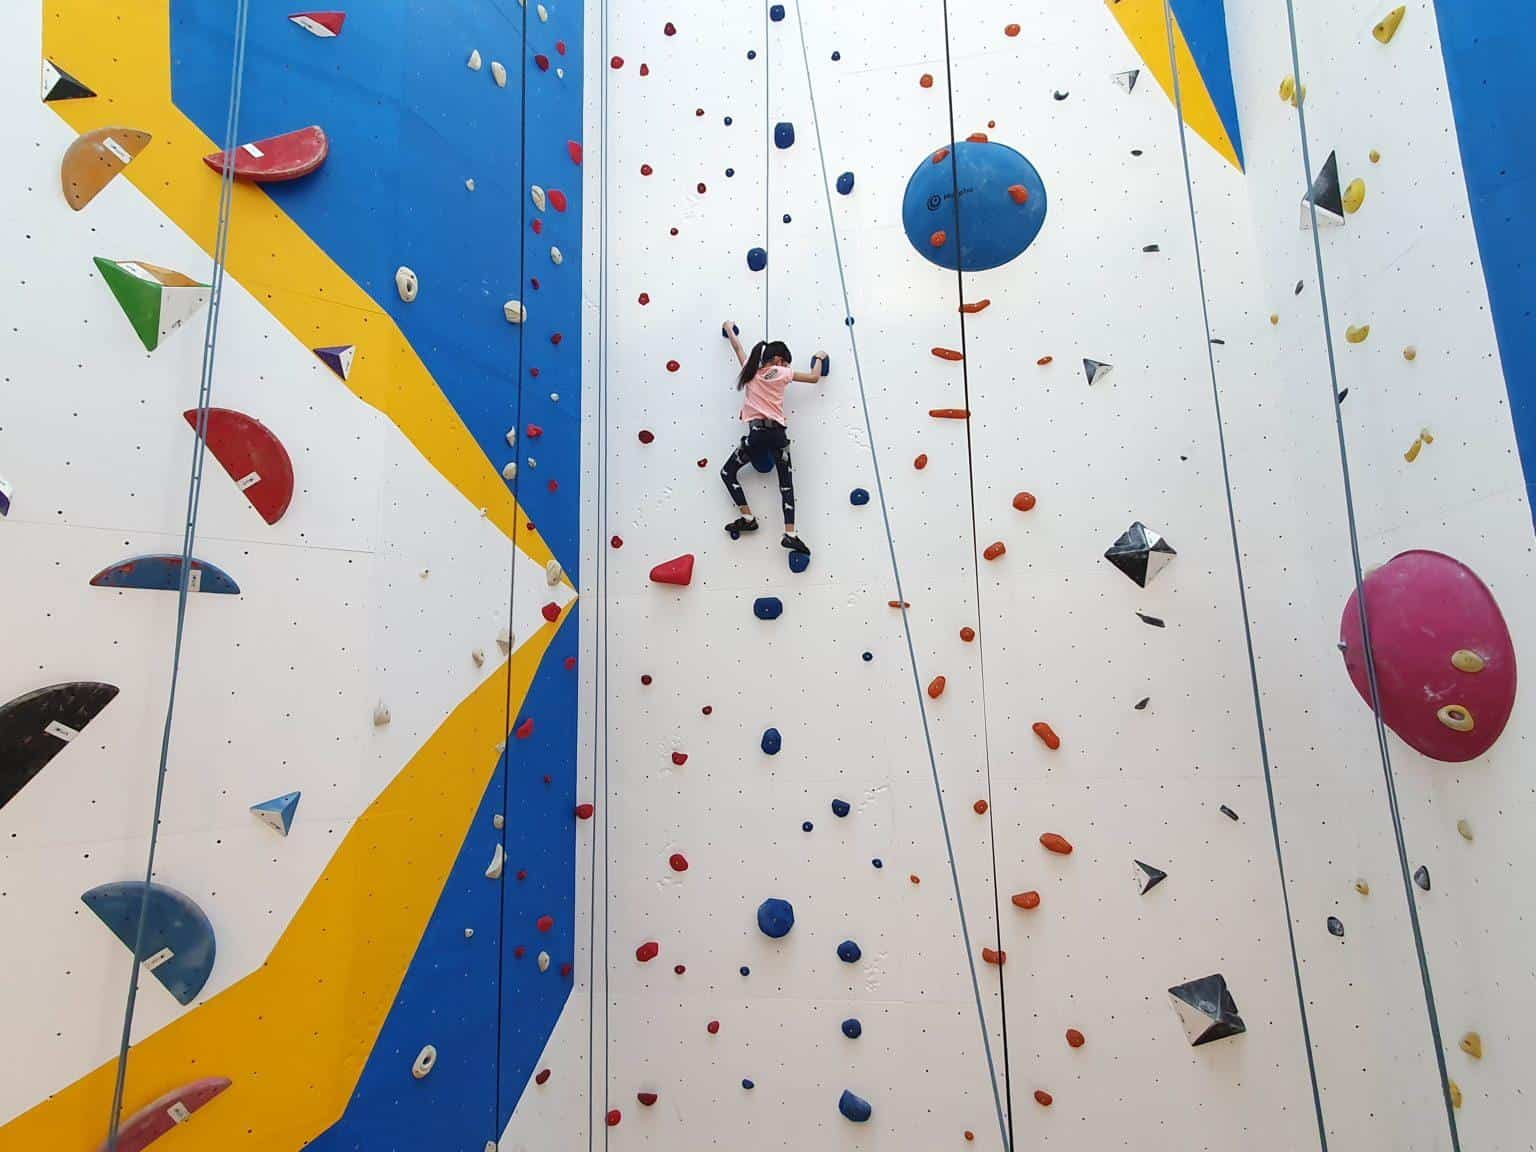 Upwall Climbing is 10 Top Rock Climbing and Bouldering Gyms in Singapore, climb central, wall climbing singapore t-hall, ground up climbing, upwall climbing booking, upwall multi-pass, lead climbing singapore, sncs level 1